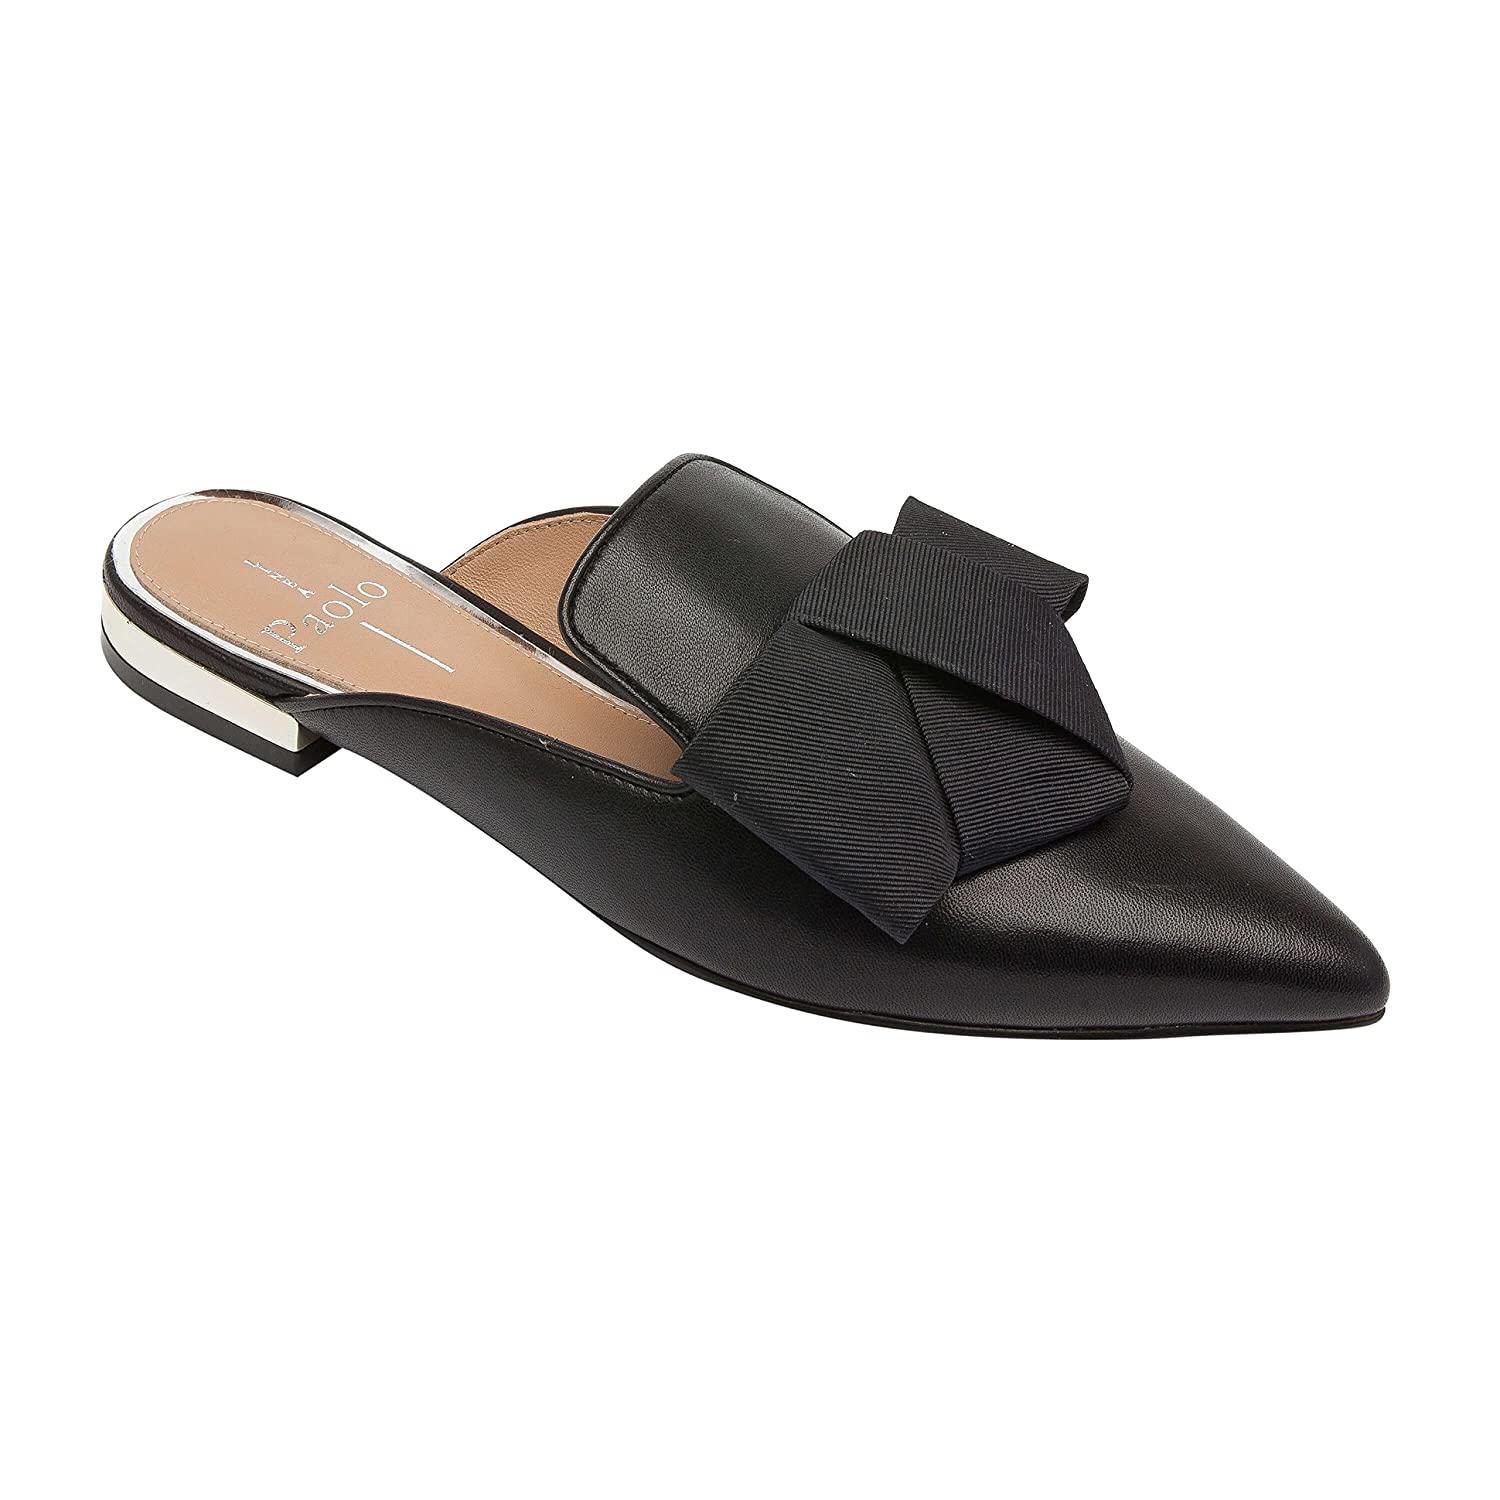 ANYA | Pointy Toe Origami Bow Slip-On Mule Flat Leather or Suede B07BC5XXKT 9 M US|Black Leather